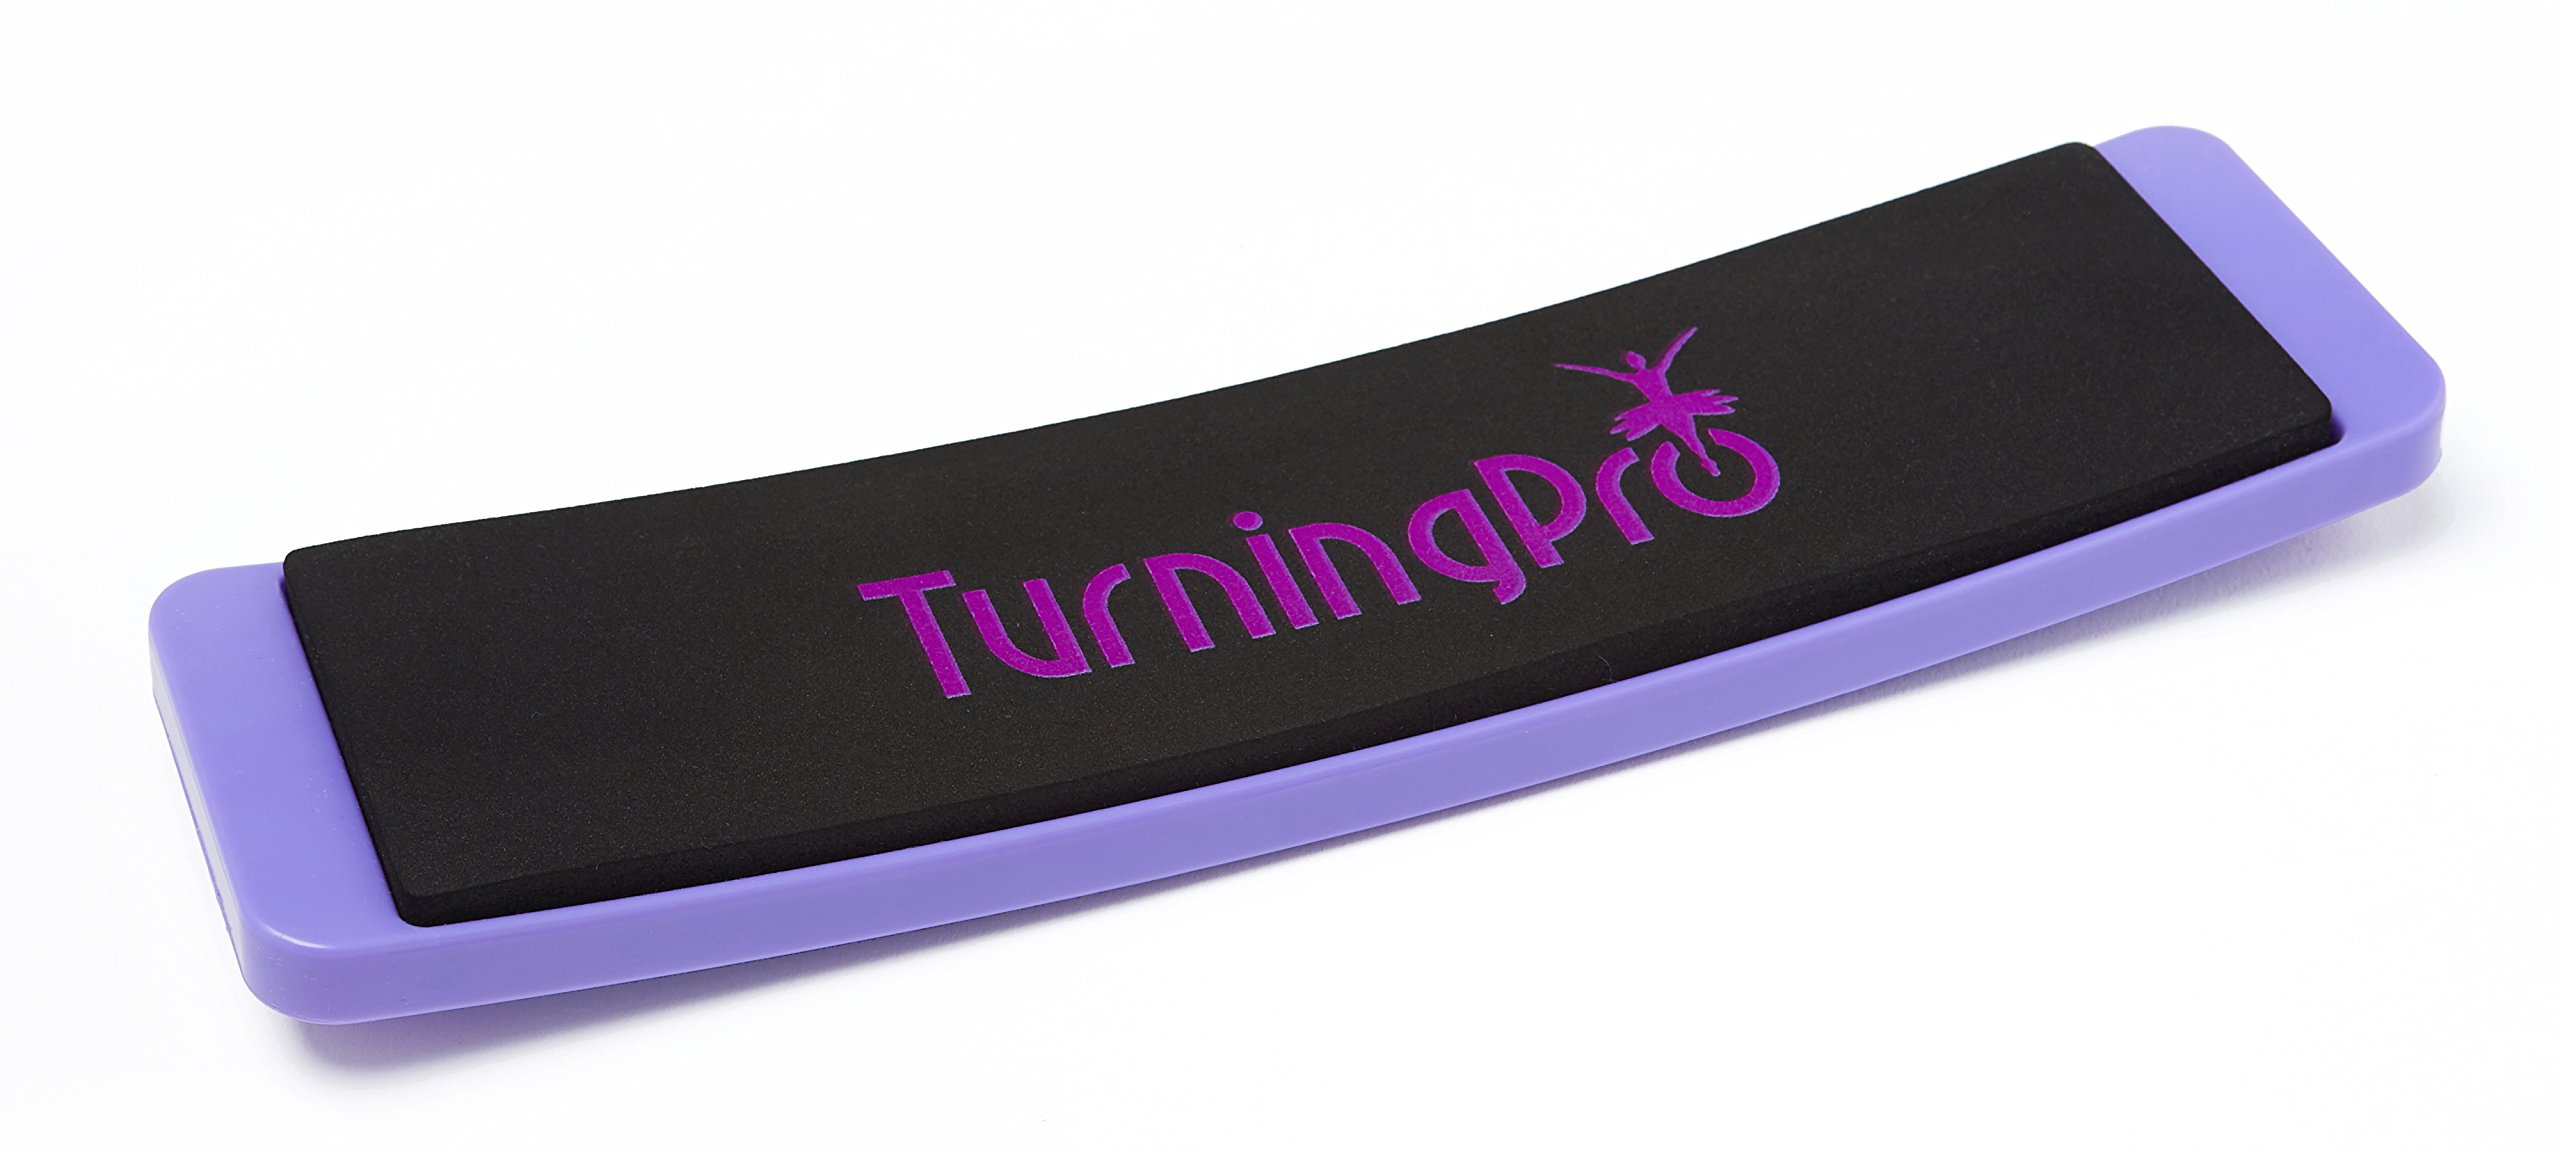 Turning Board - Pastel Purple Ballet Board for Dance, Pirouttes, Practice, Balance Training, Gymnastics, Skating and Fun - Velvet bag included